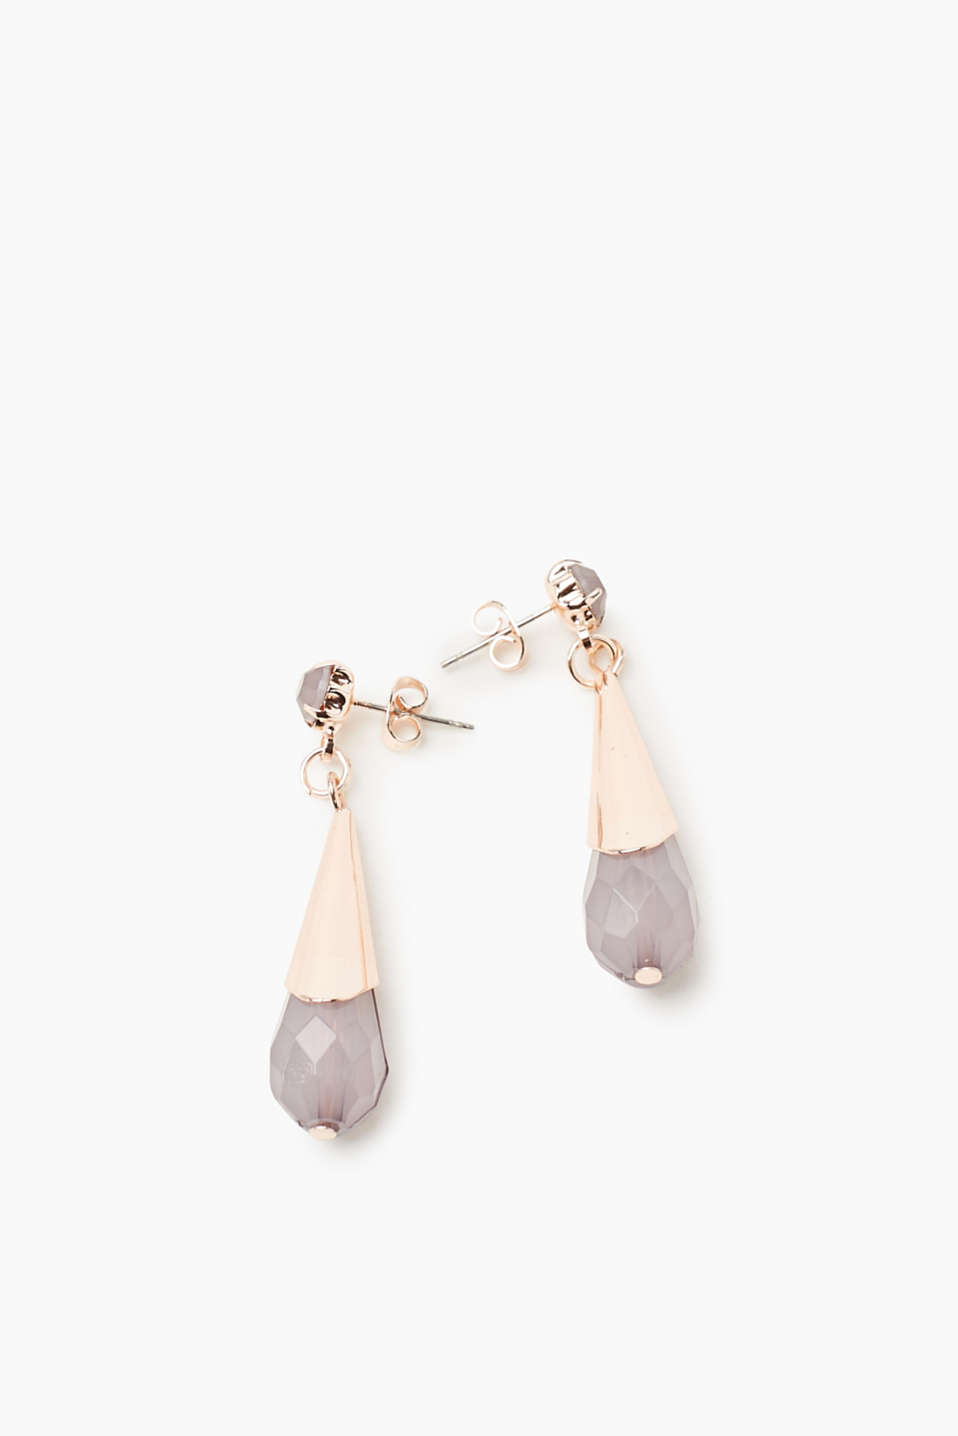 These earrings are a stylish accessory thanks to the elegant tear-drop shape and high-quality precious stone look.